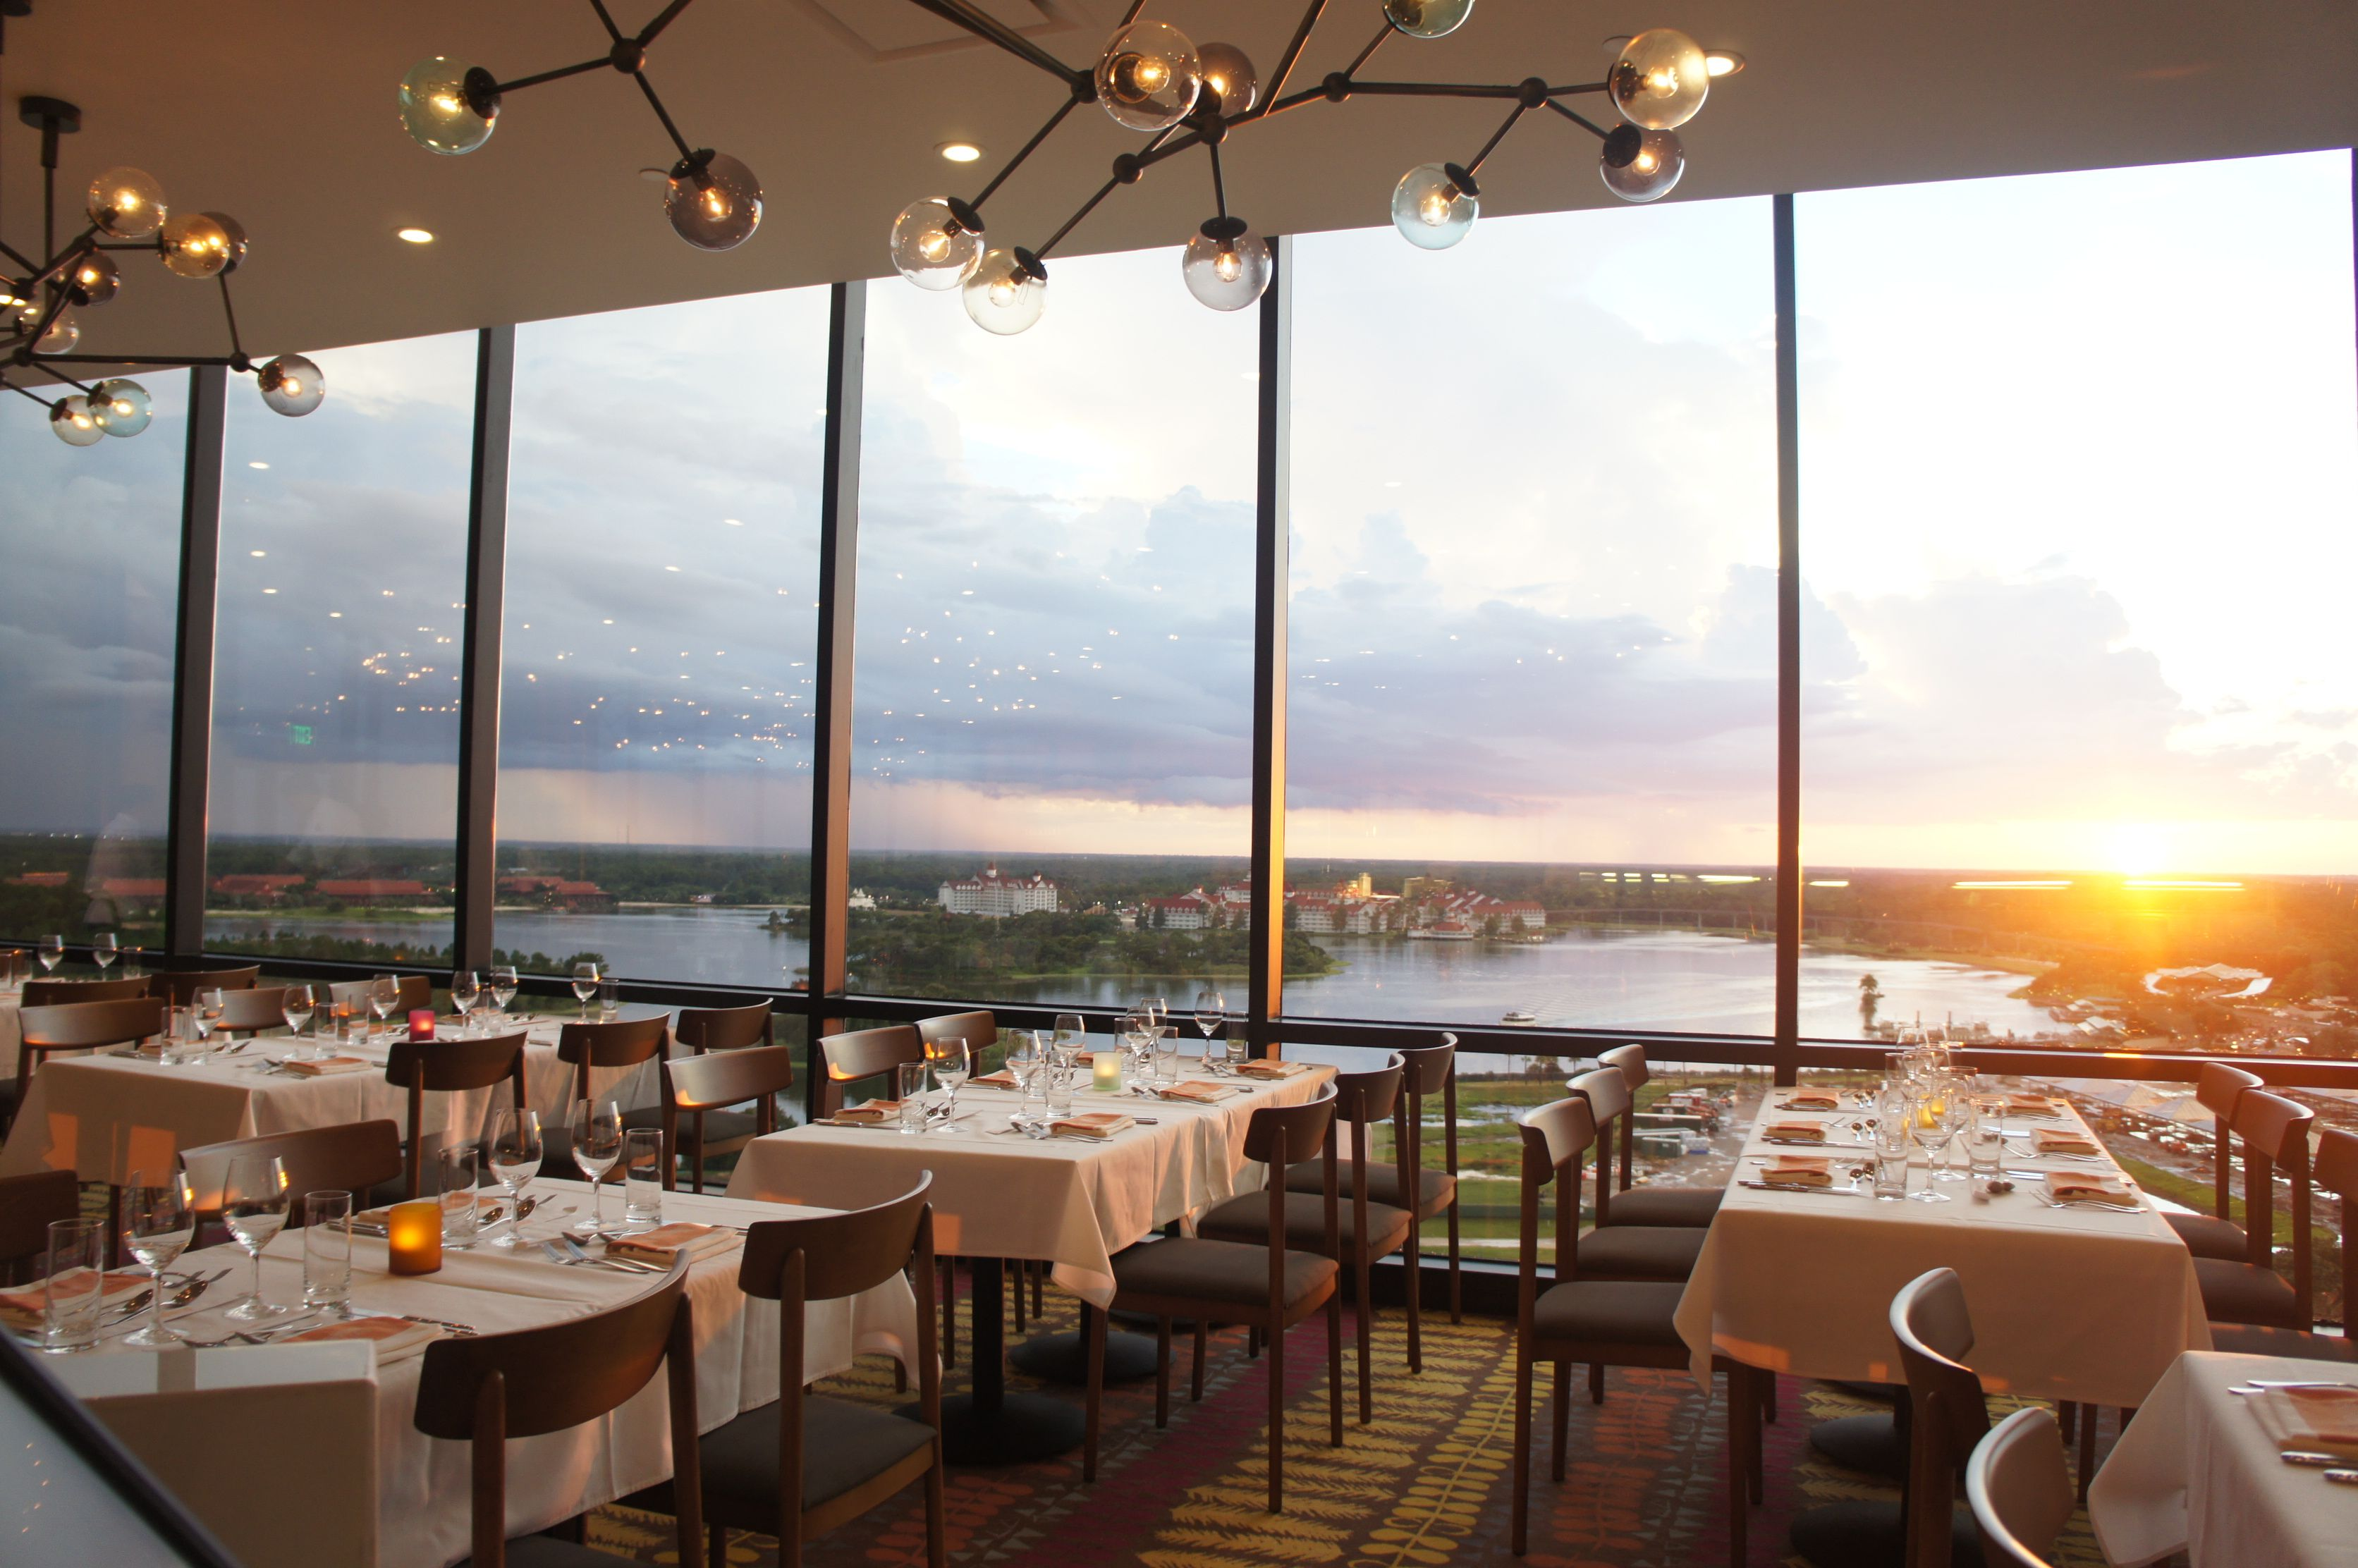 California grill watch the sunset fireworks over magic